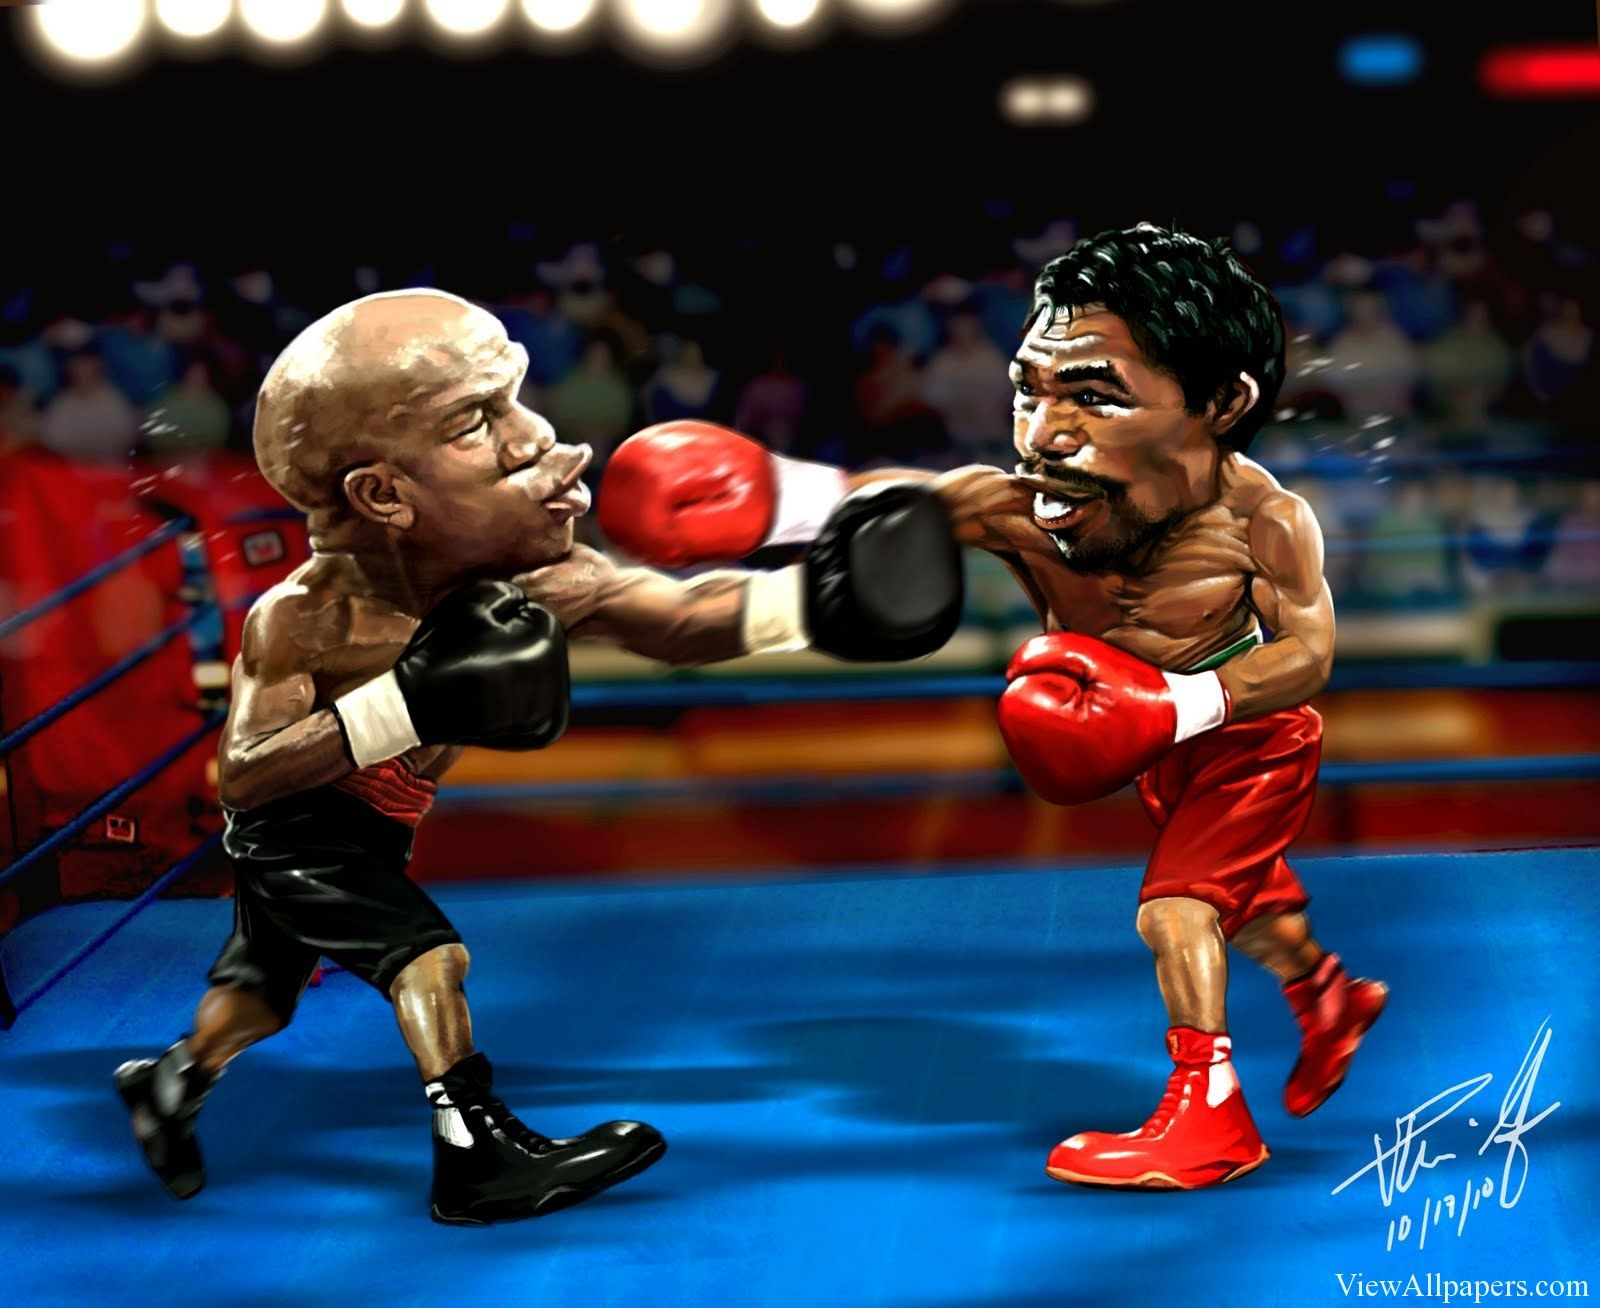 Floyd Mayweather Vs Manny Pacquiao Cartoon Sports Hd Wallpapers Funny Pictures Manny Pacquiao Jokes Photos